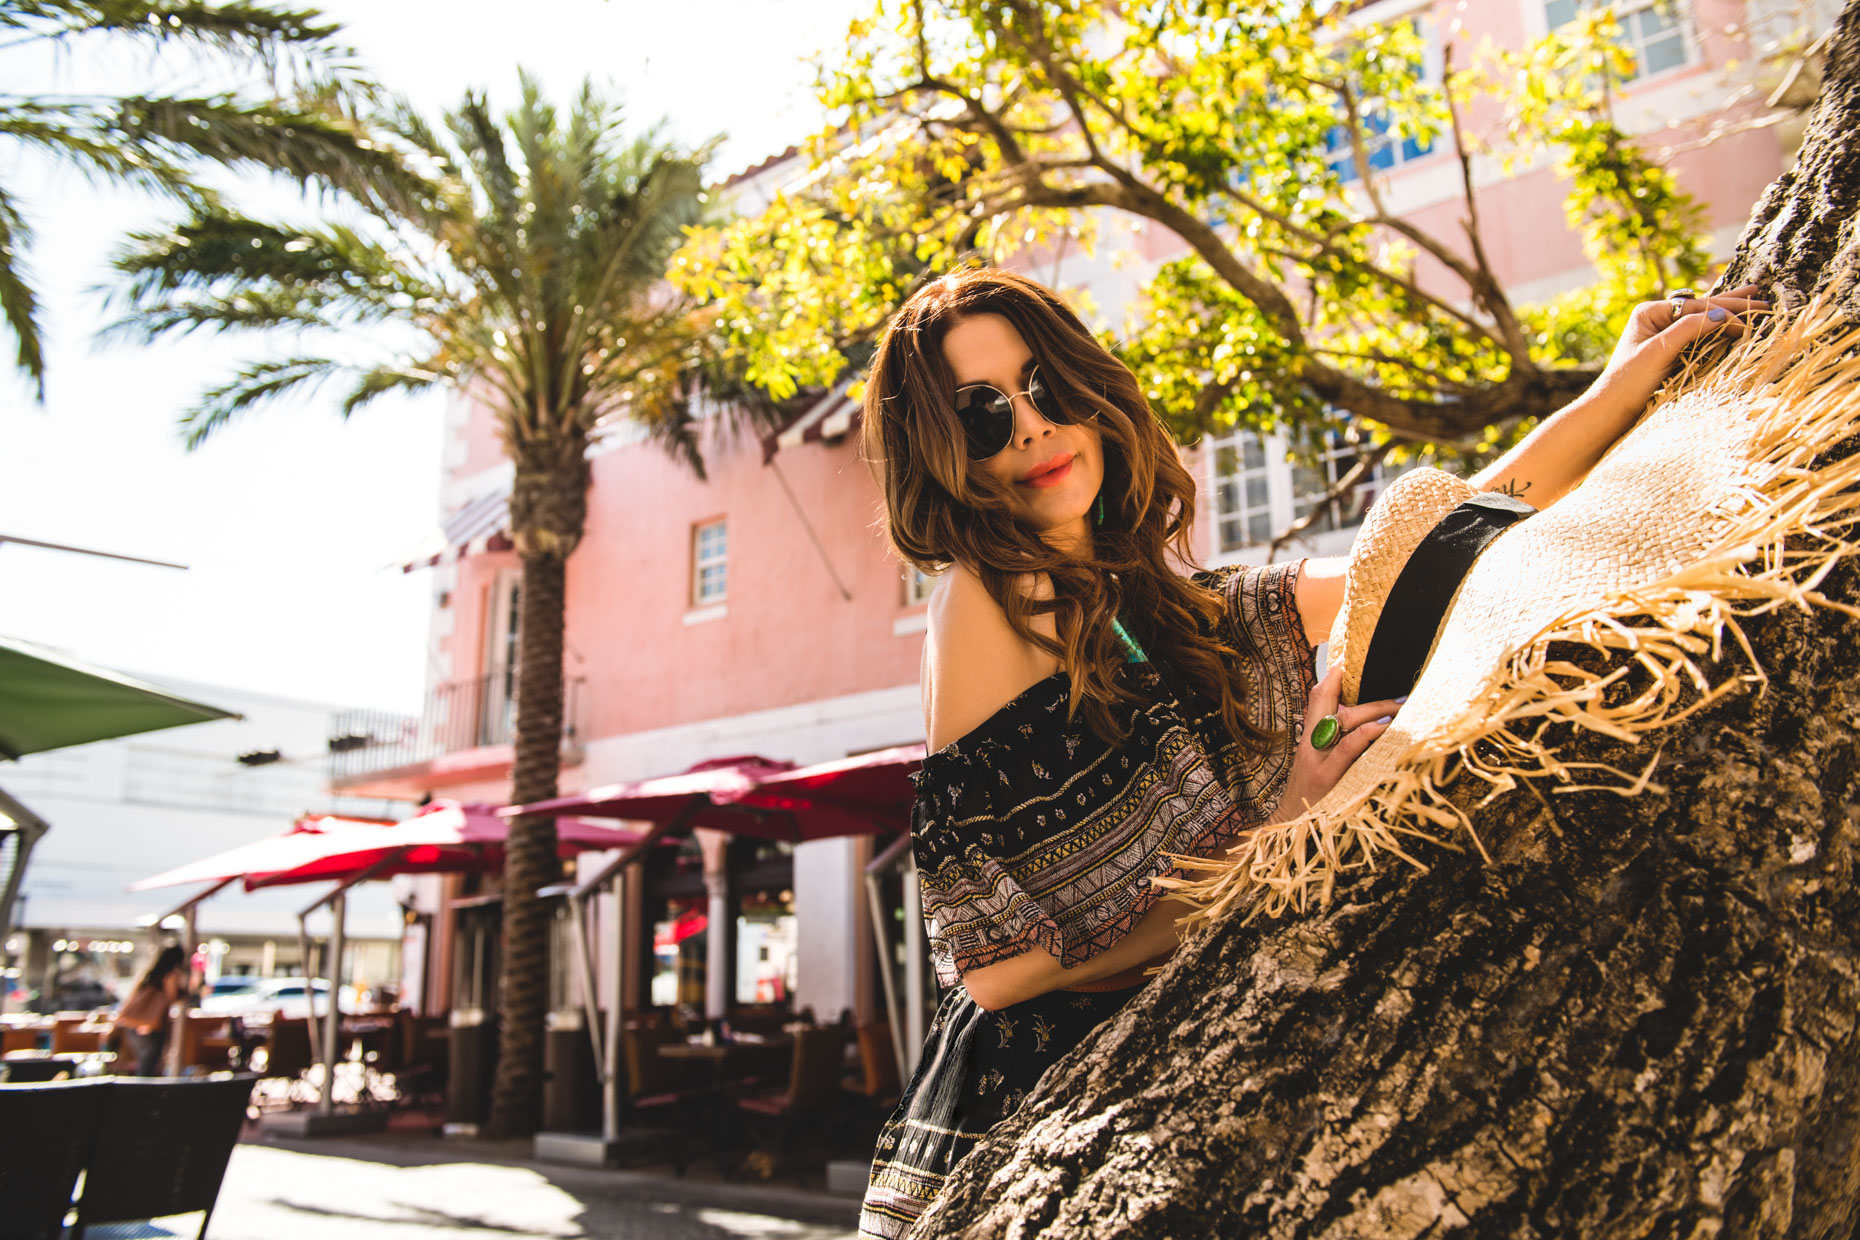 A Day on Espanola Way